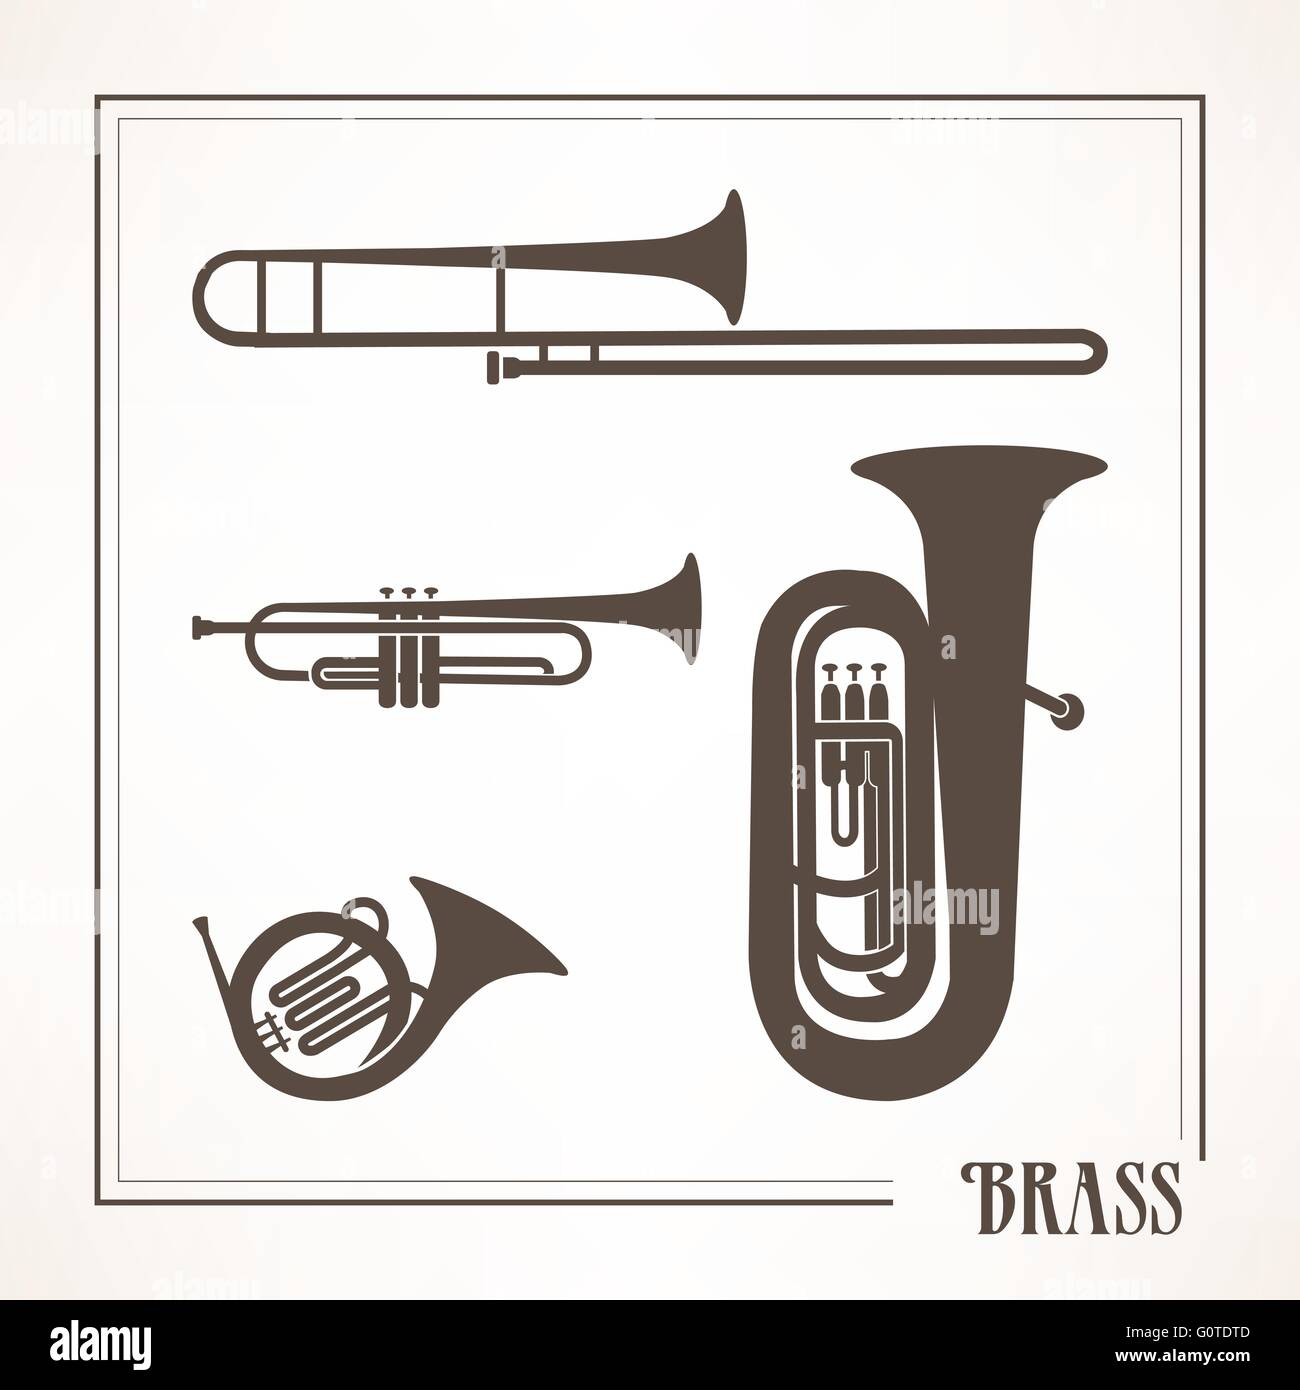 Classical musical brass instruments: trumpets, horn and trombone - Stock Image